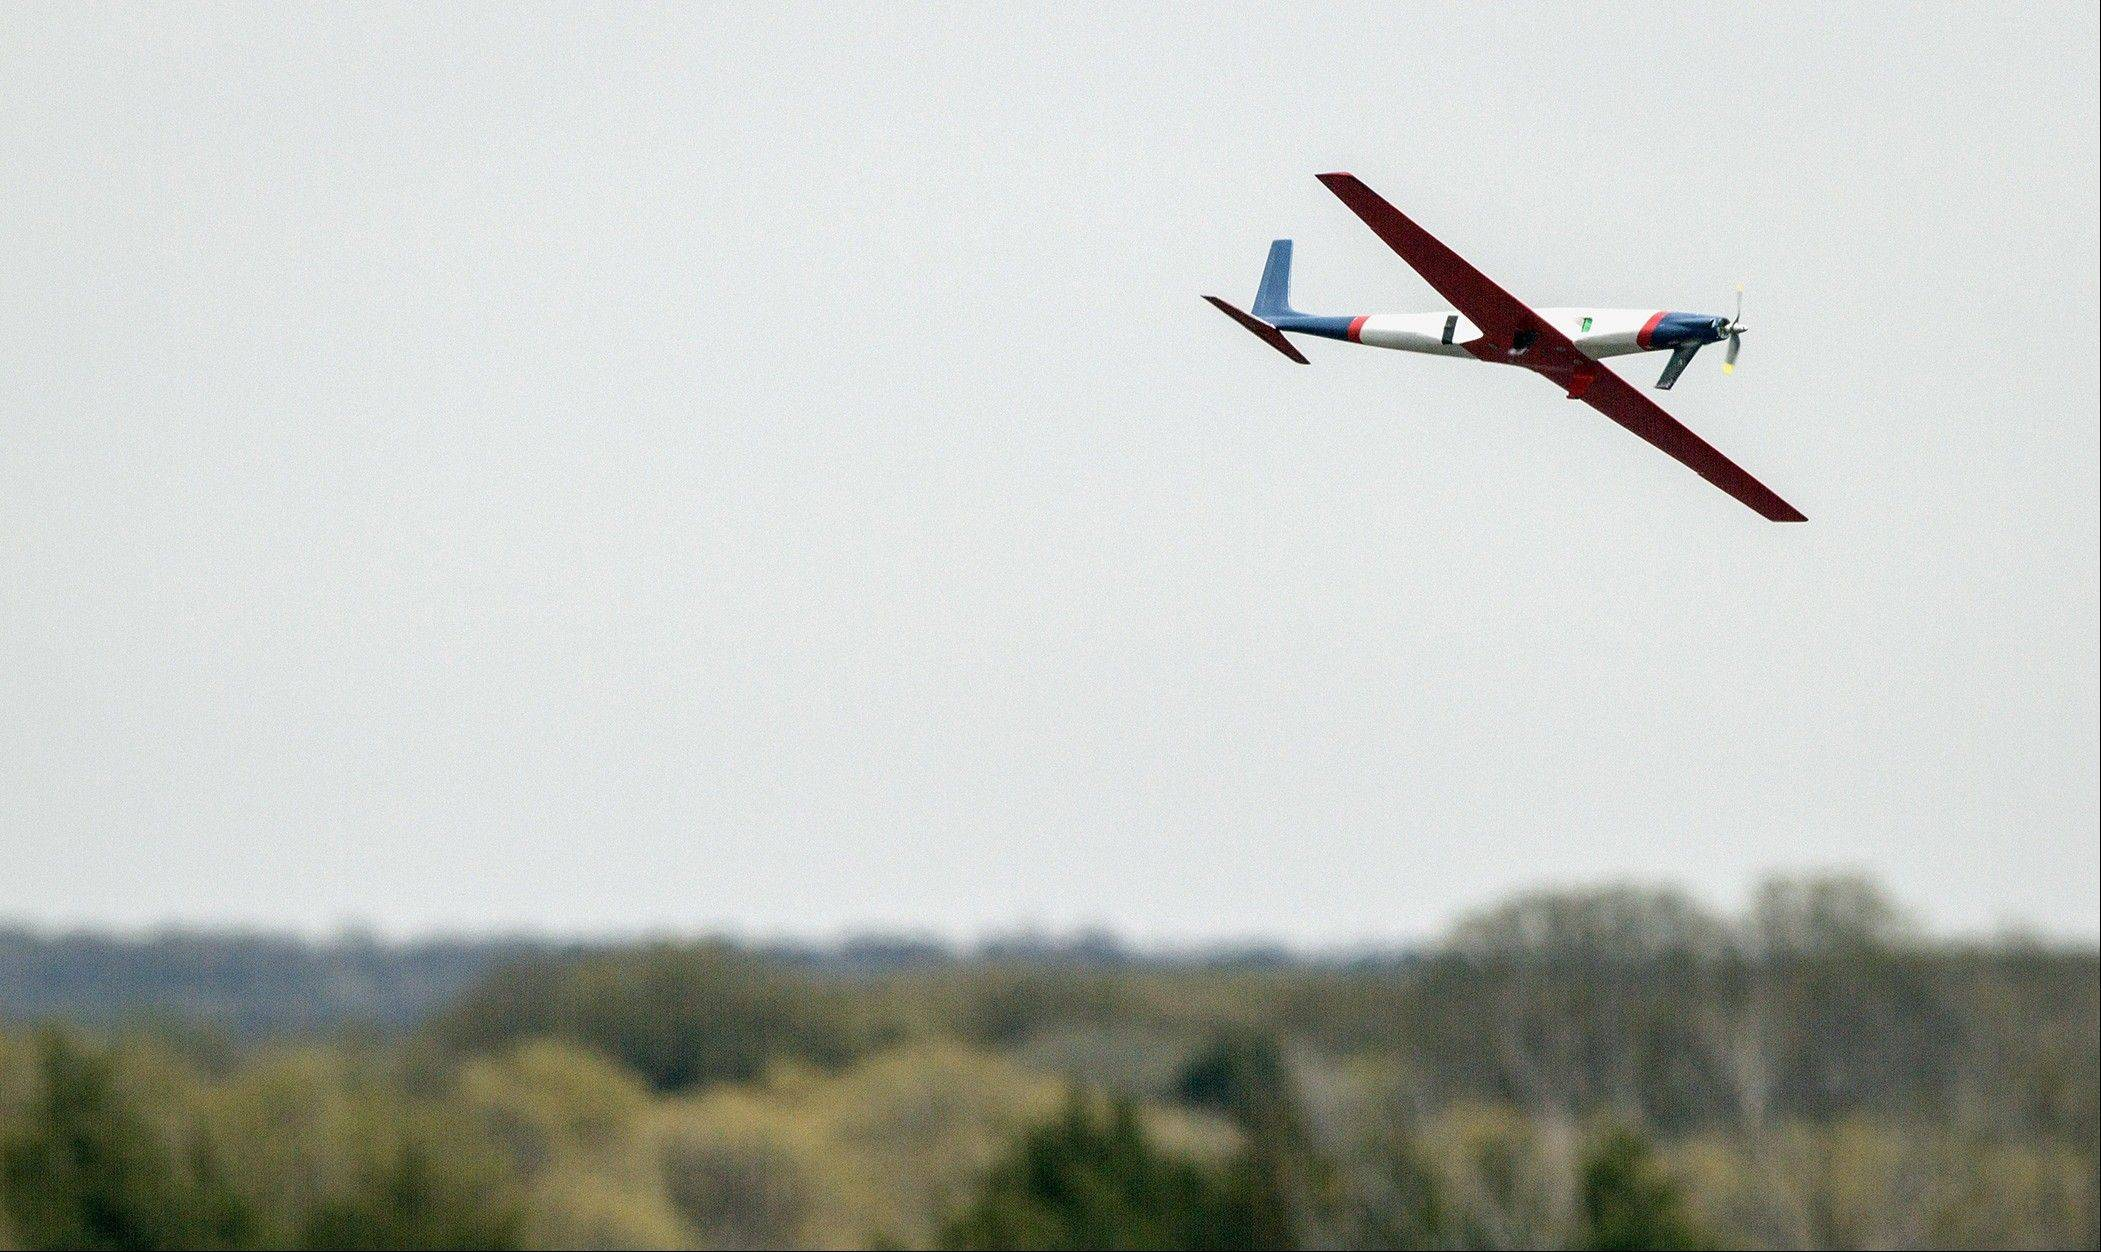 Team Black's airplane takes off during SpeedFest III, in Stillwater, Okla. Researchers at Oklahoma State University are designing and building sleek, Kevlar-reinforced unmanned aircraft to fly into the nation's worst storms.